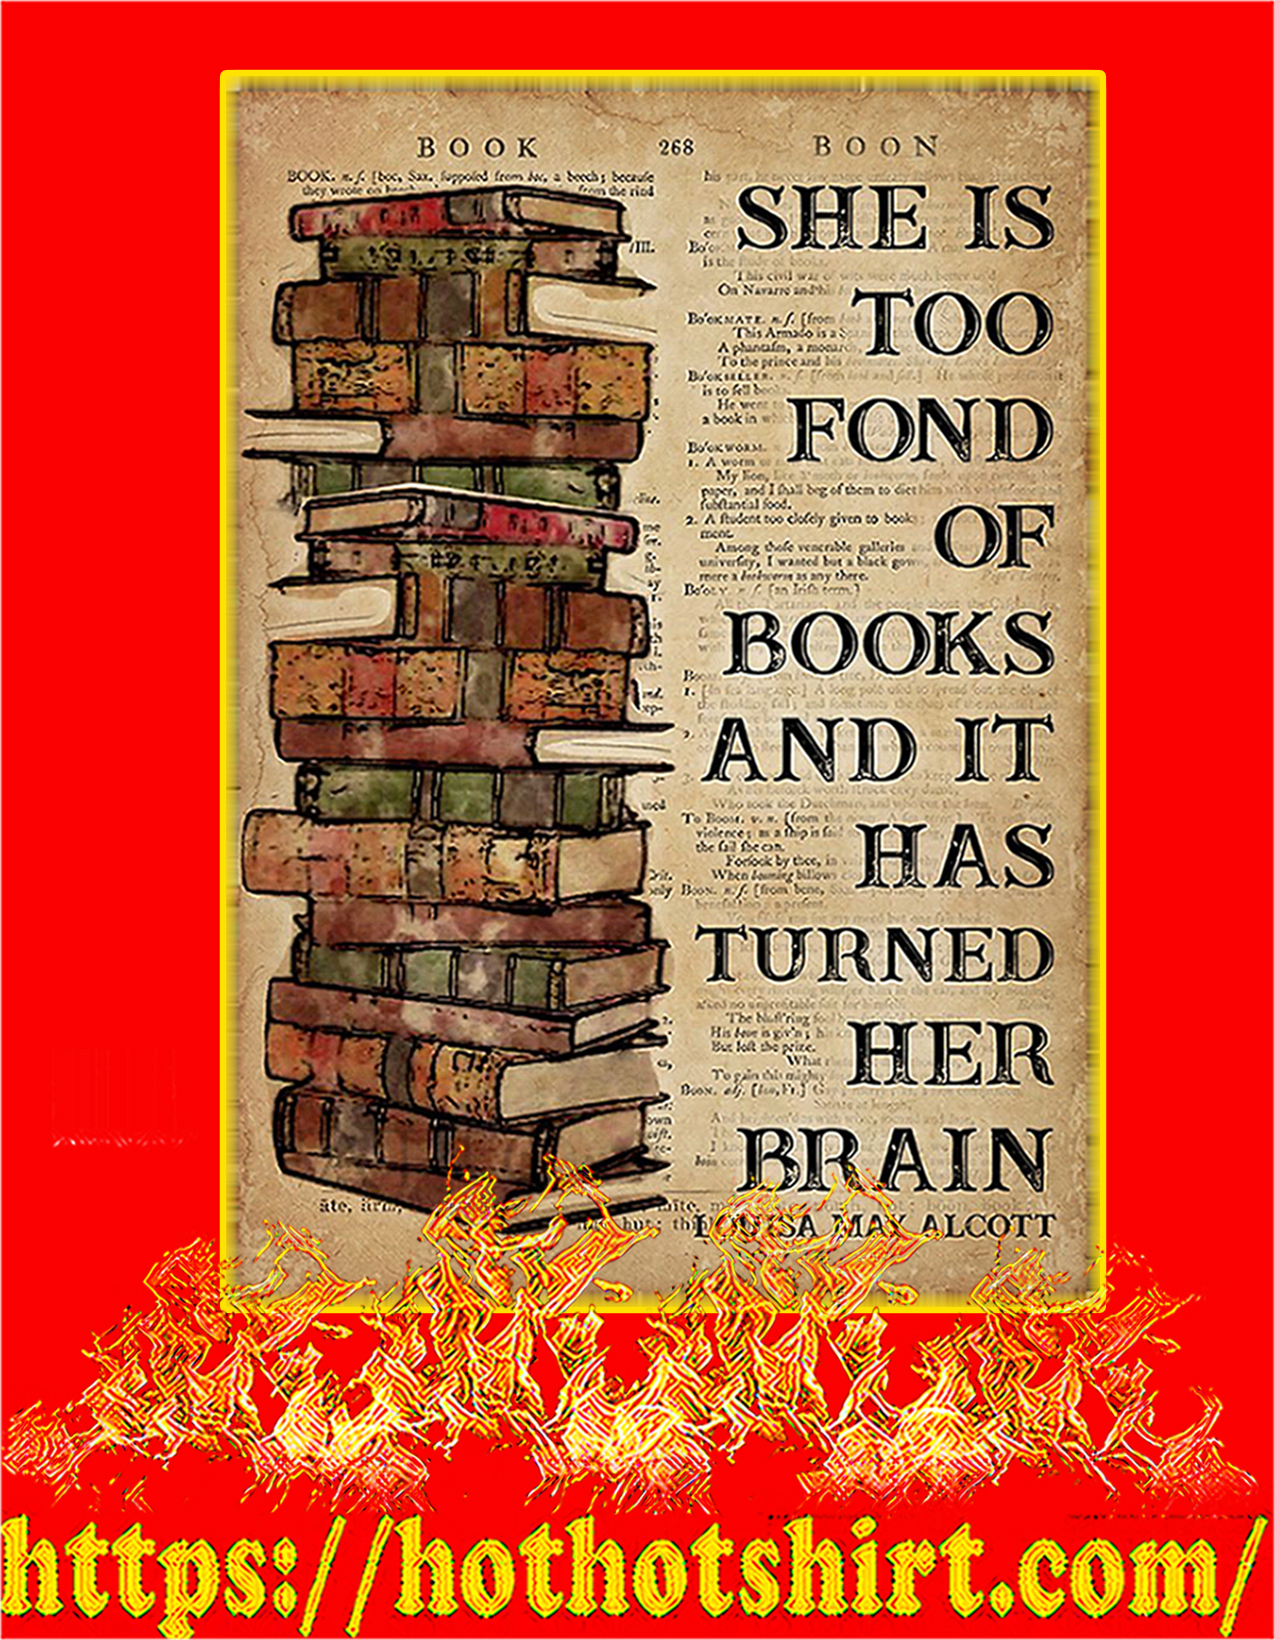 Book she is too fond of books poster - A2